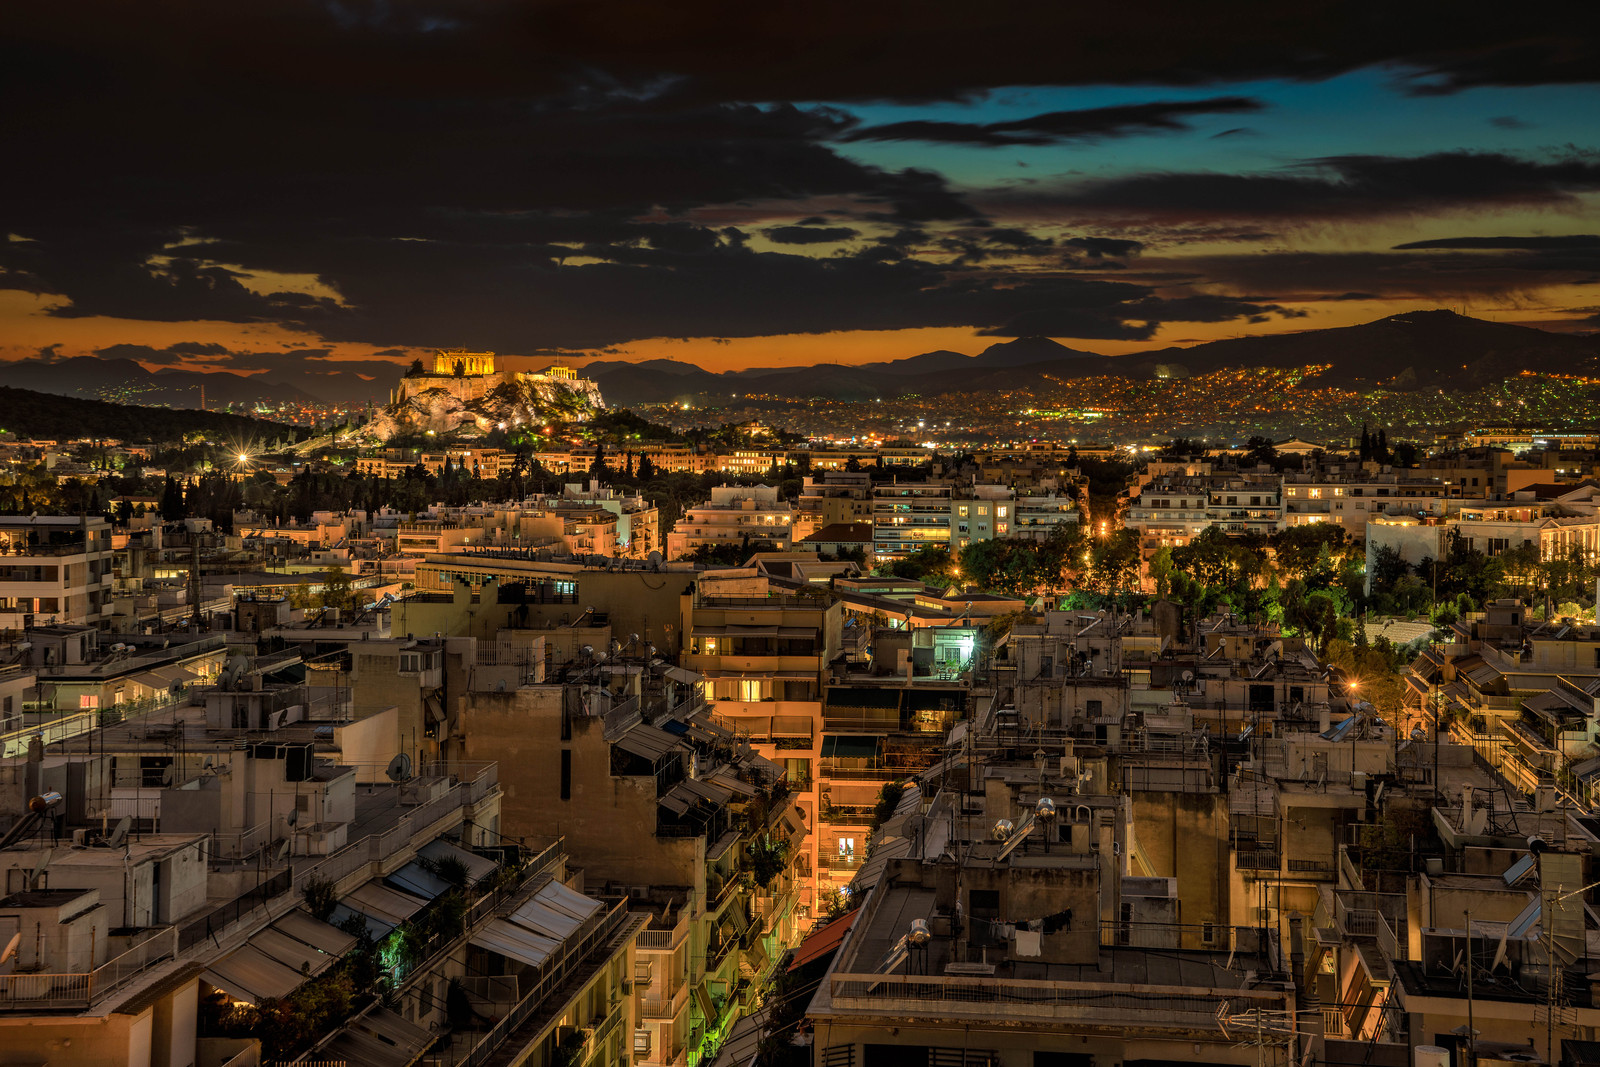 Sunset over Athens, Greece